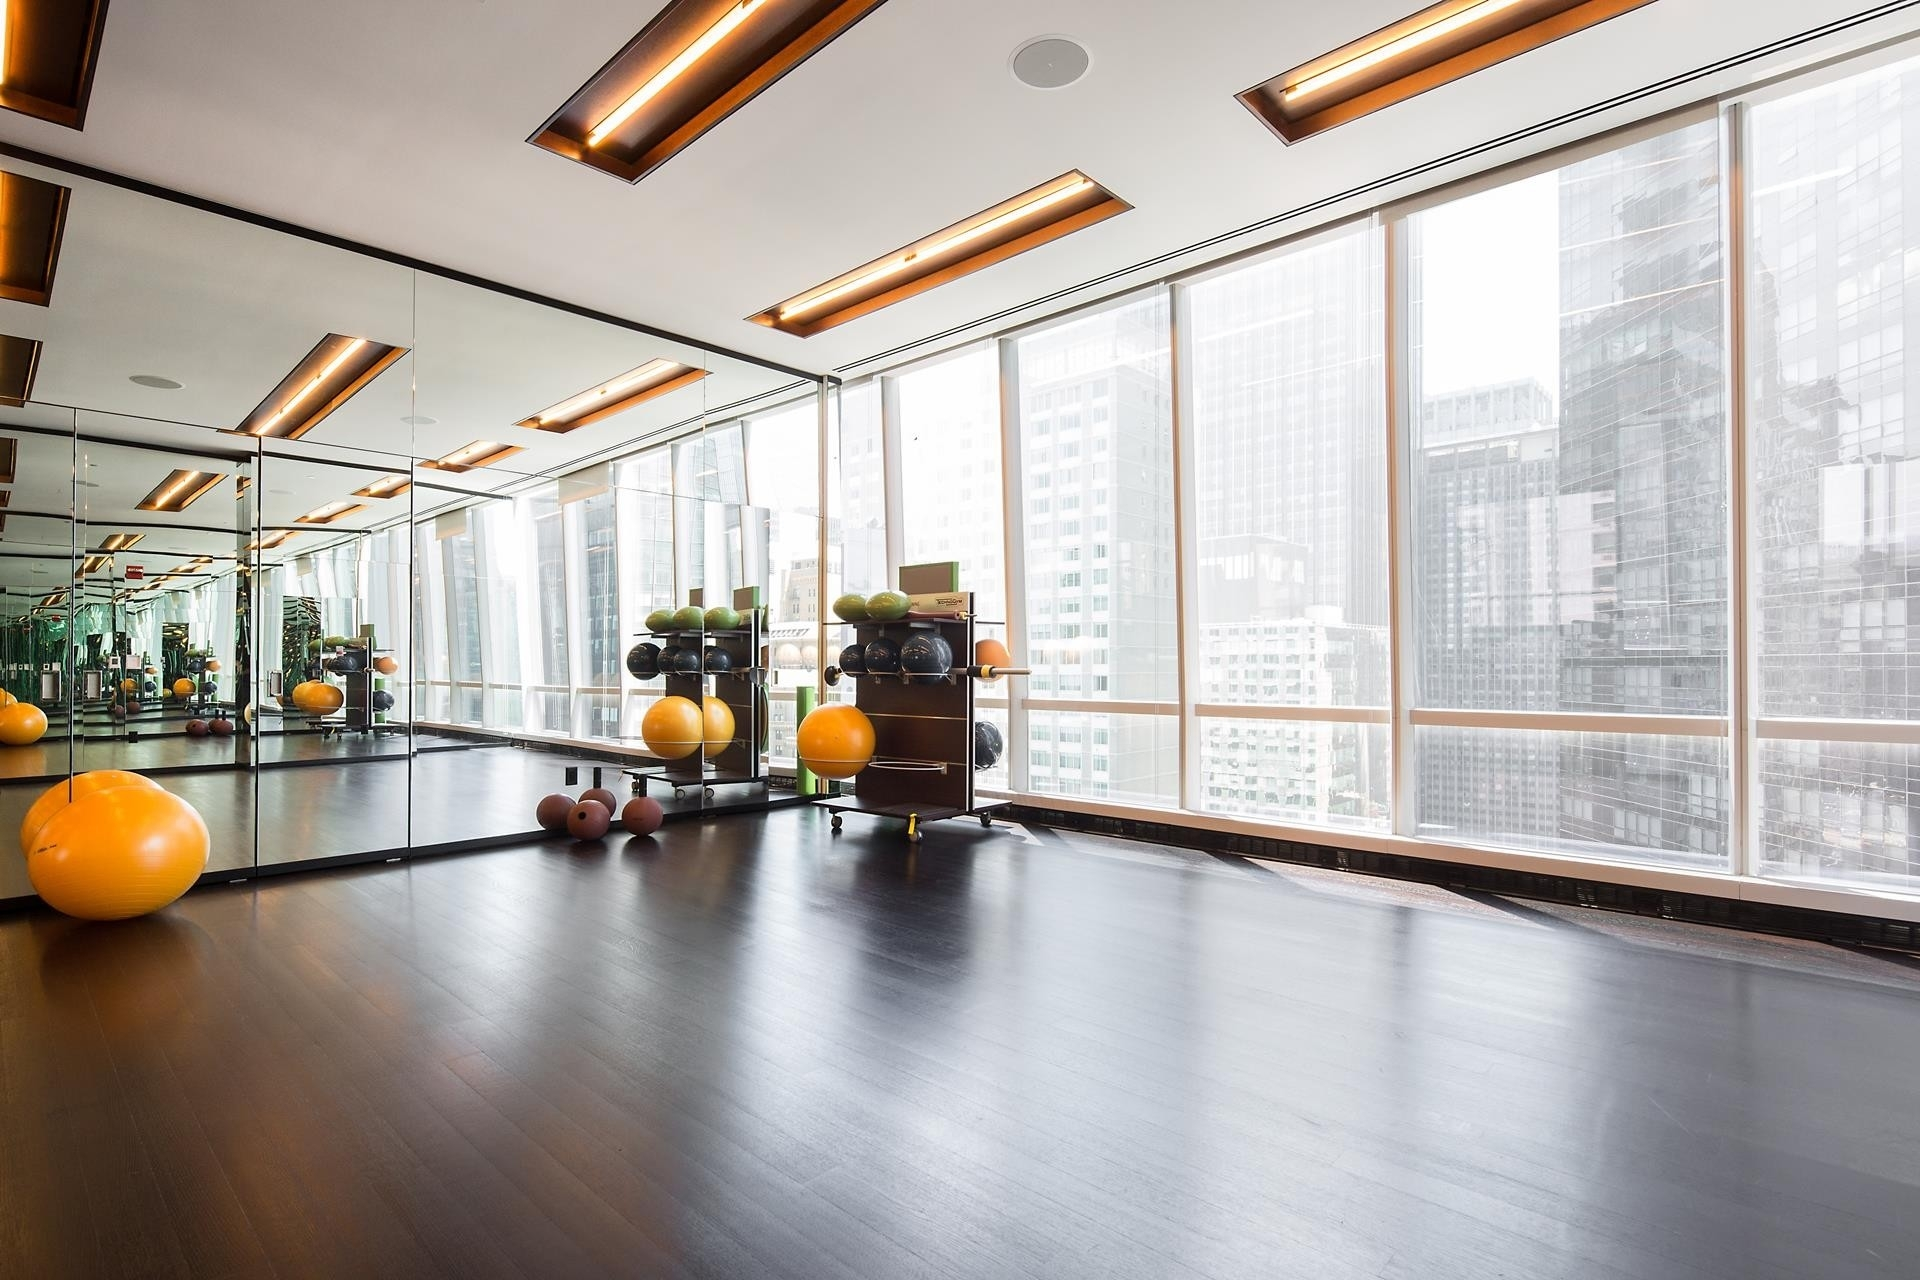 32. Condominiums for Sale at One57, 157 West 57th St, 87 Midtown West, New York, NY 10019